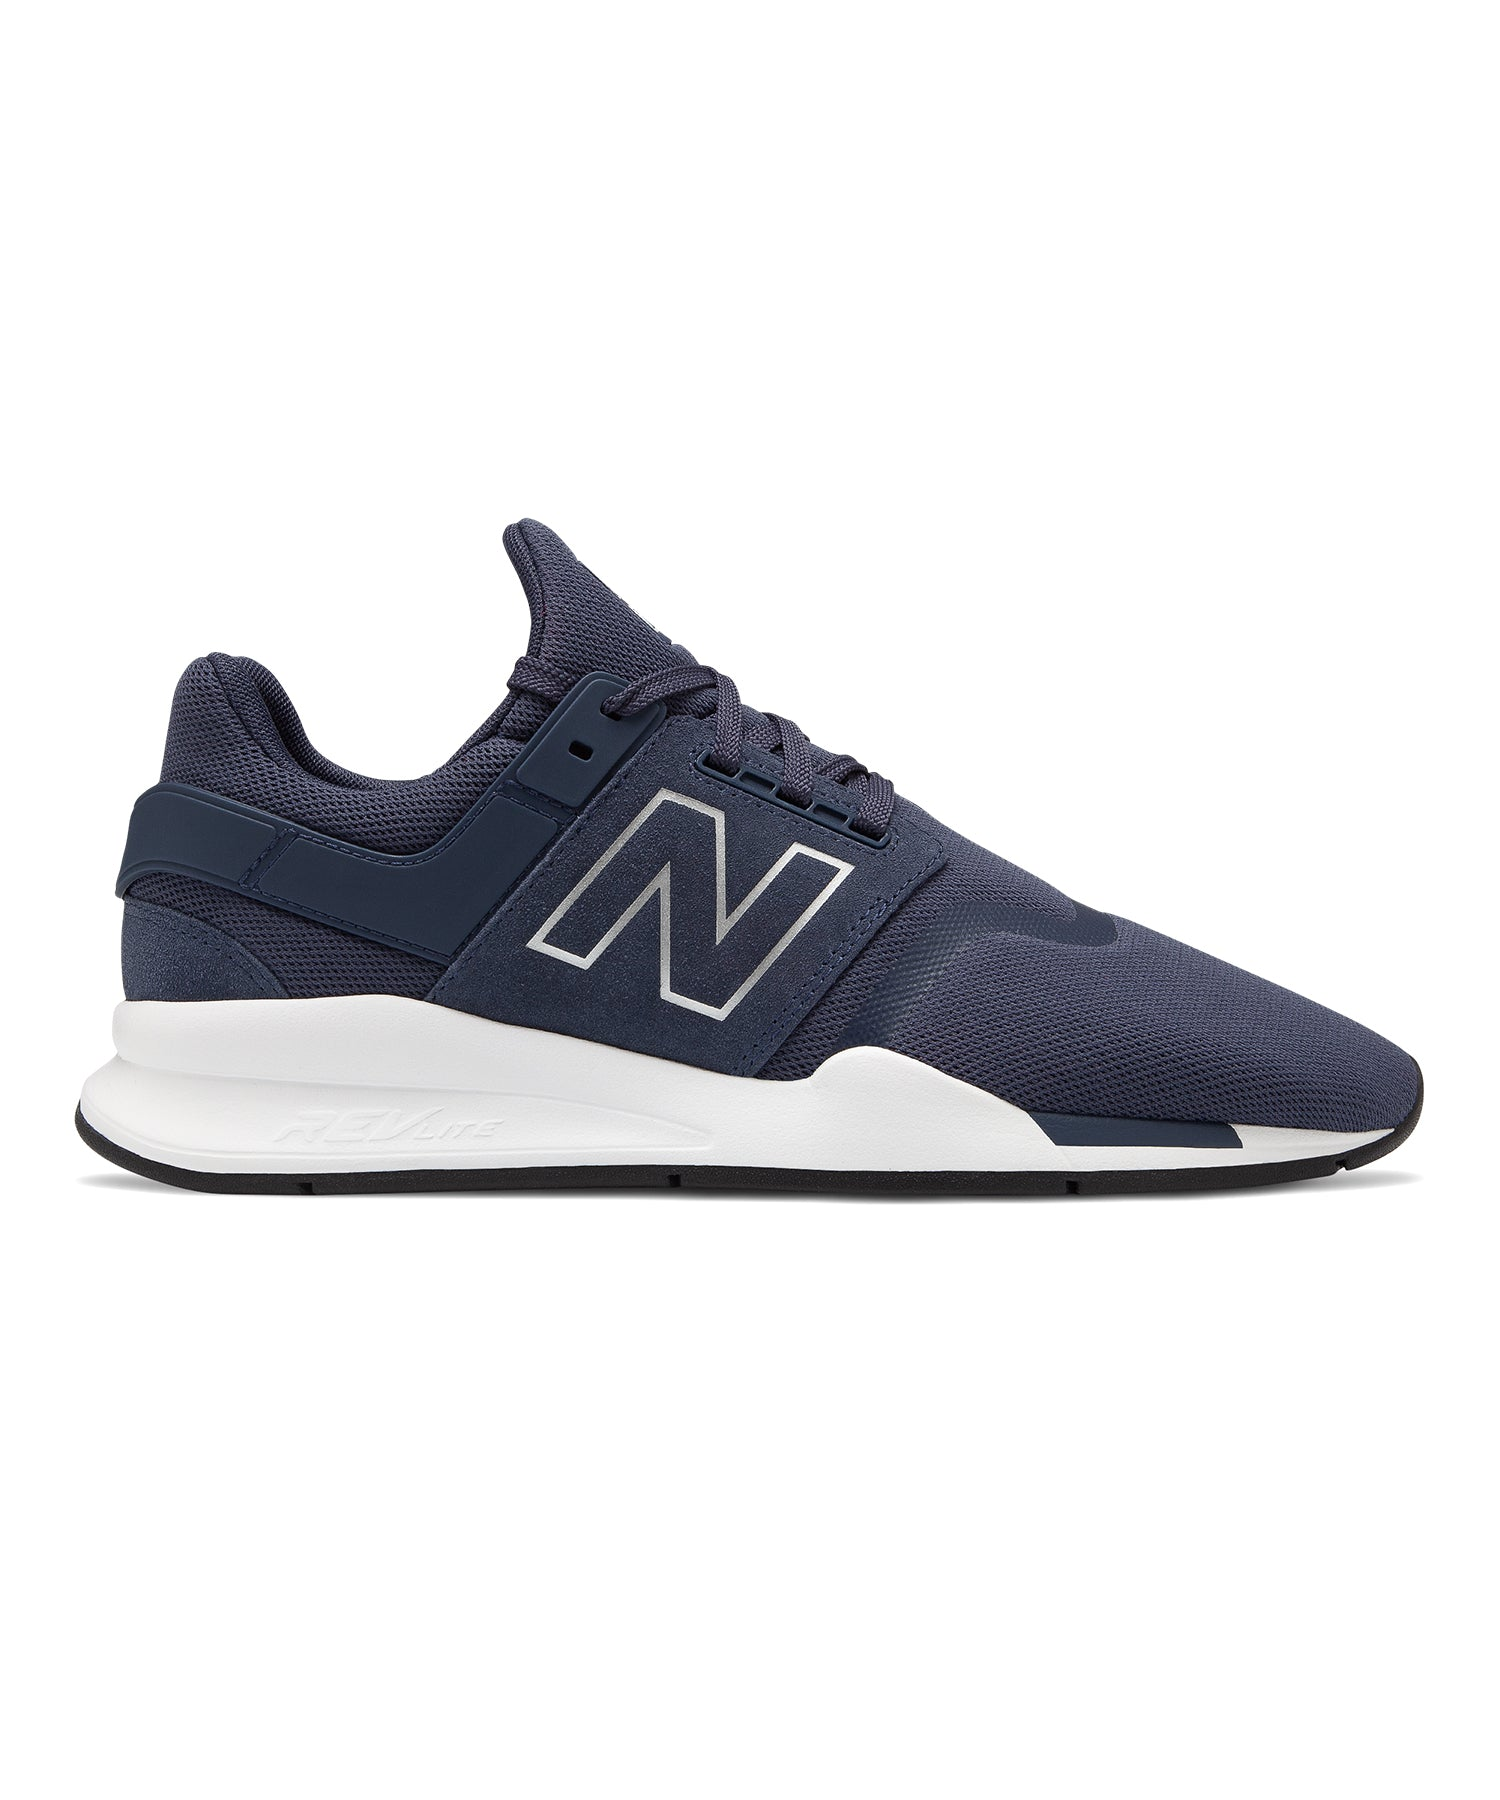 factory price e9bf4 28bfa New Balance - Todd Snyder